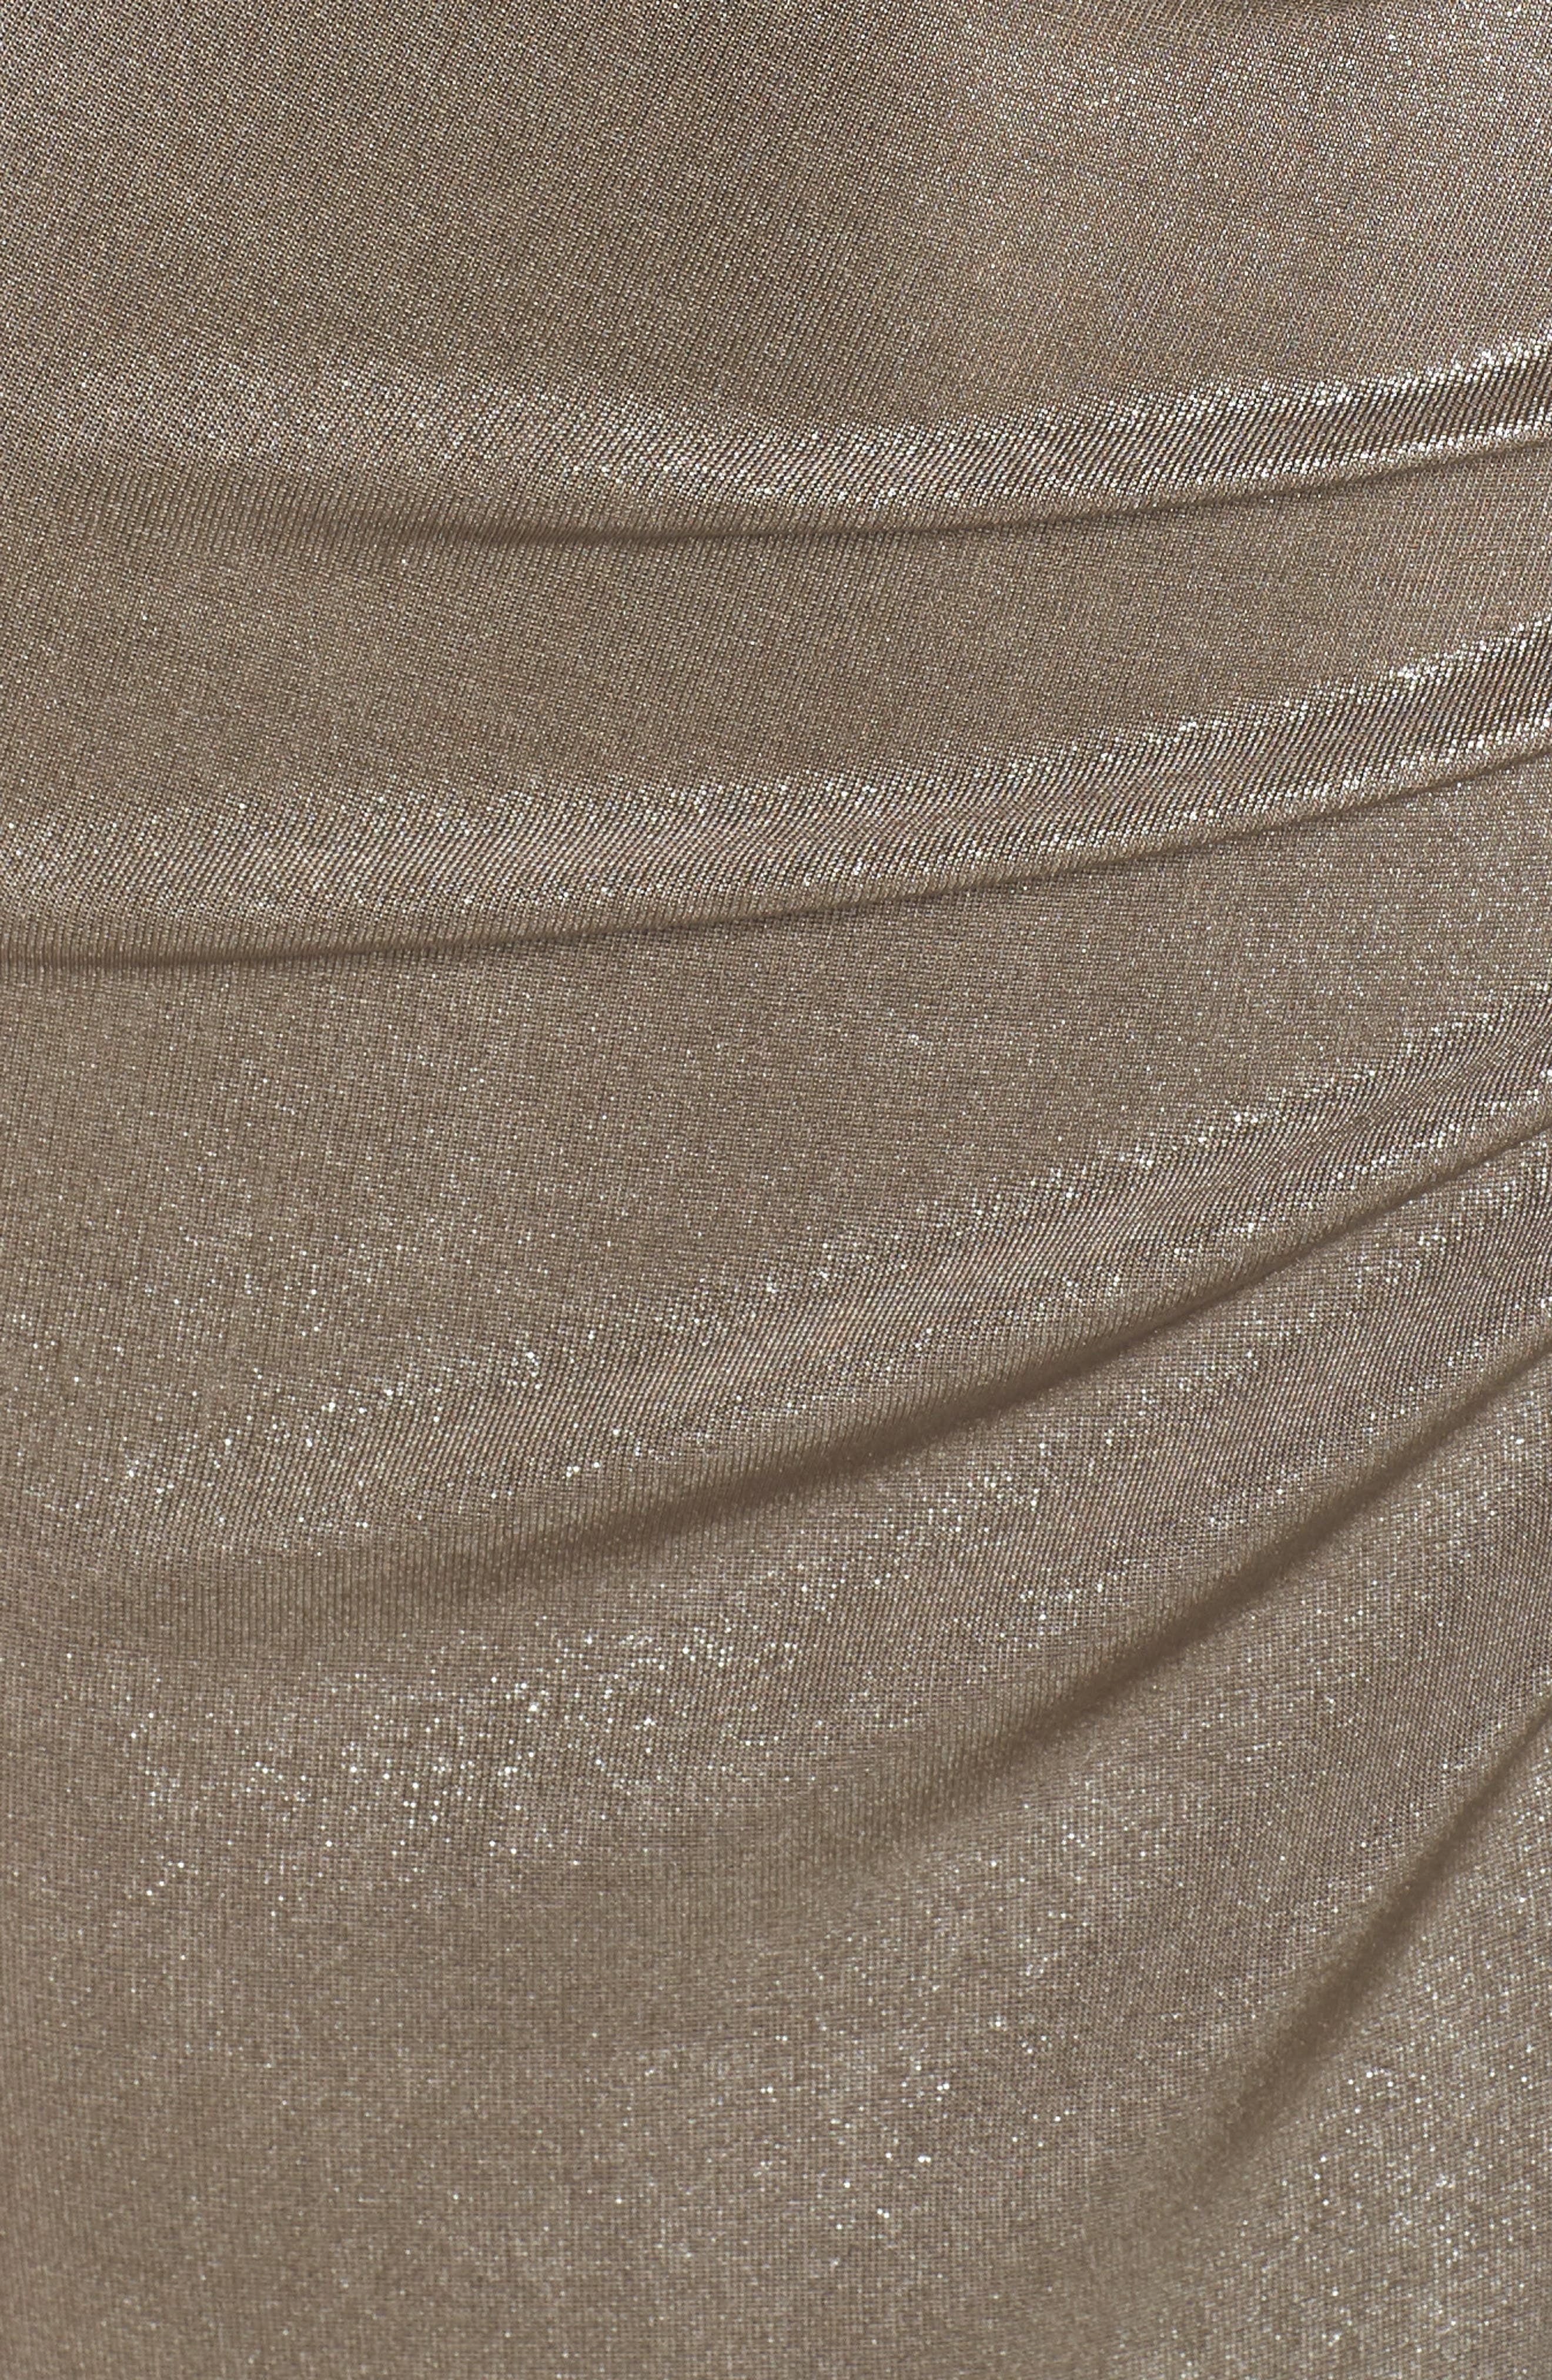 Ruched Metallic Jersey Gown,                             Alternate thumbnail 6, color,                             MINK